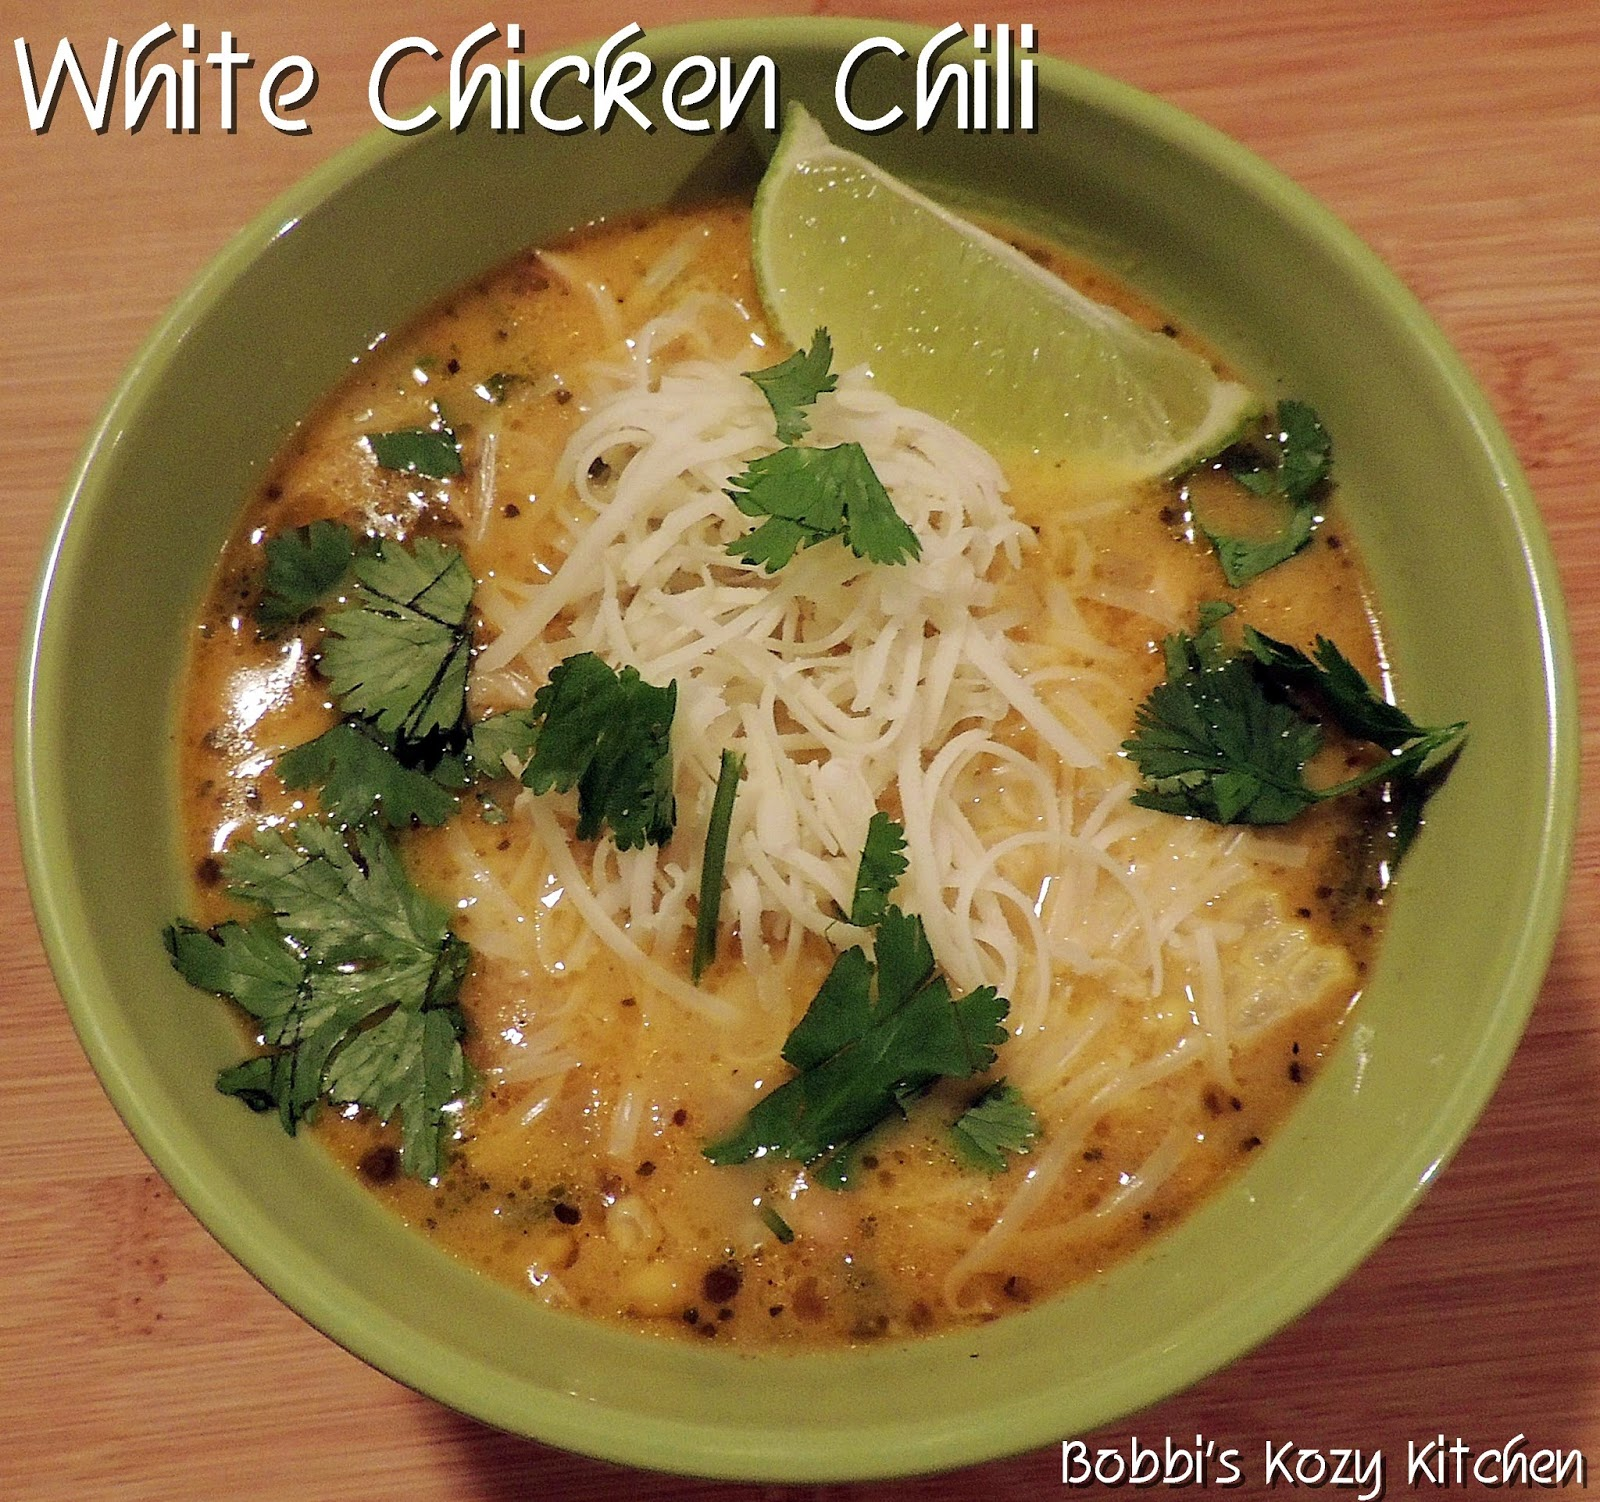 white chicken chili white bean chicken chili chili white chicken chili ...